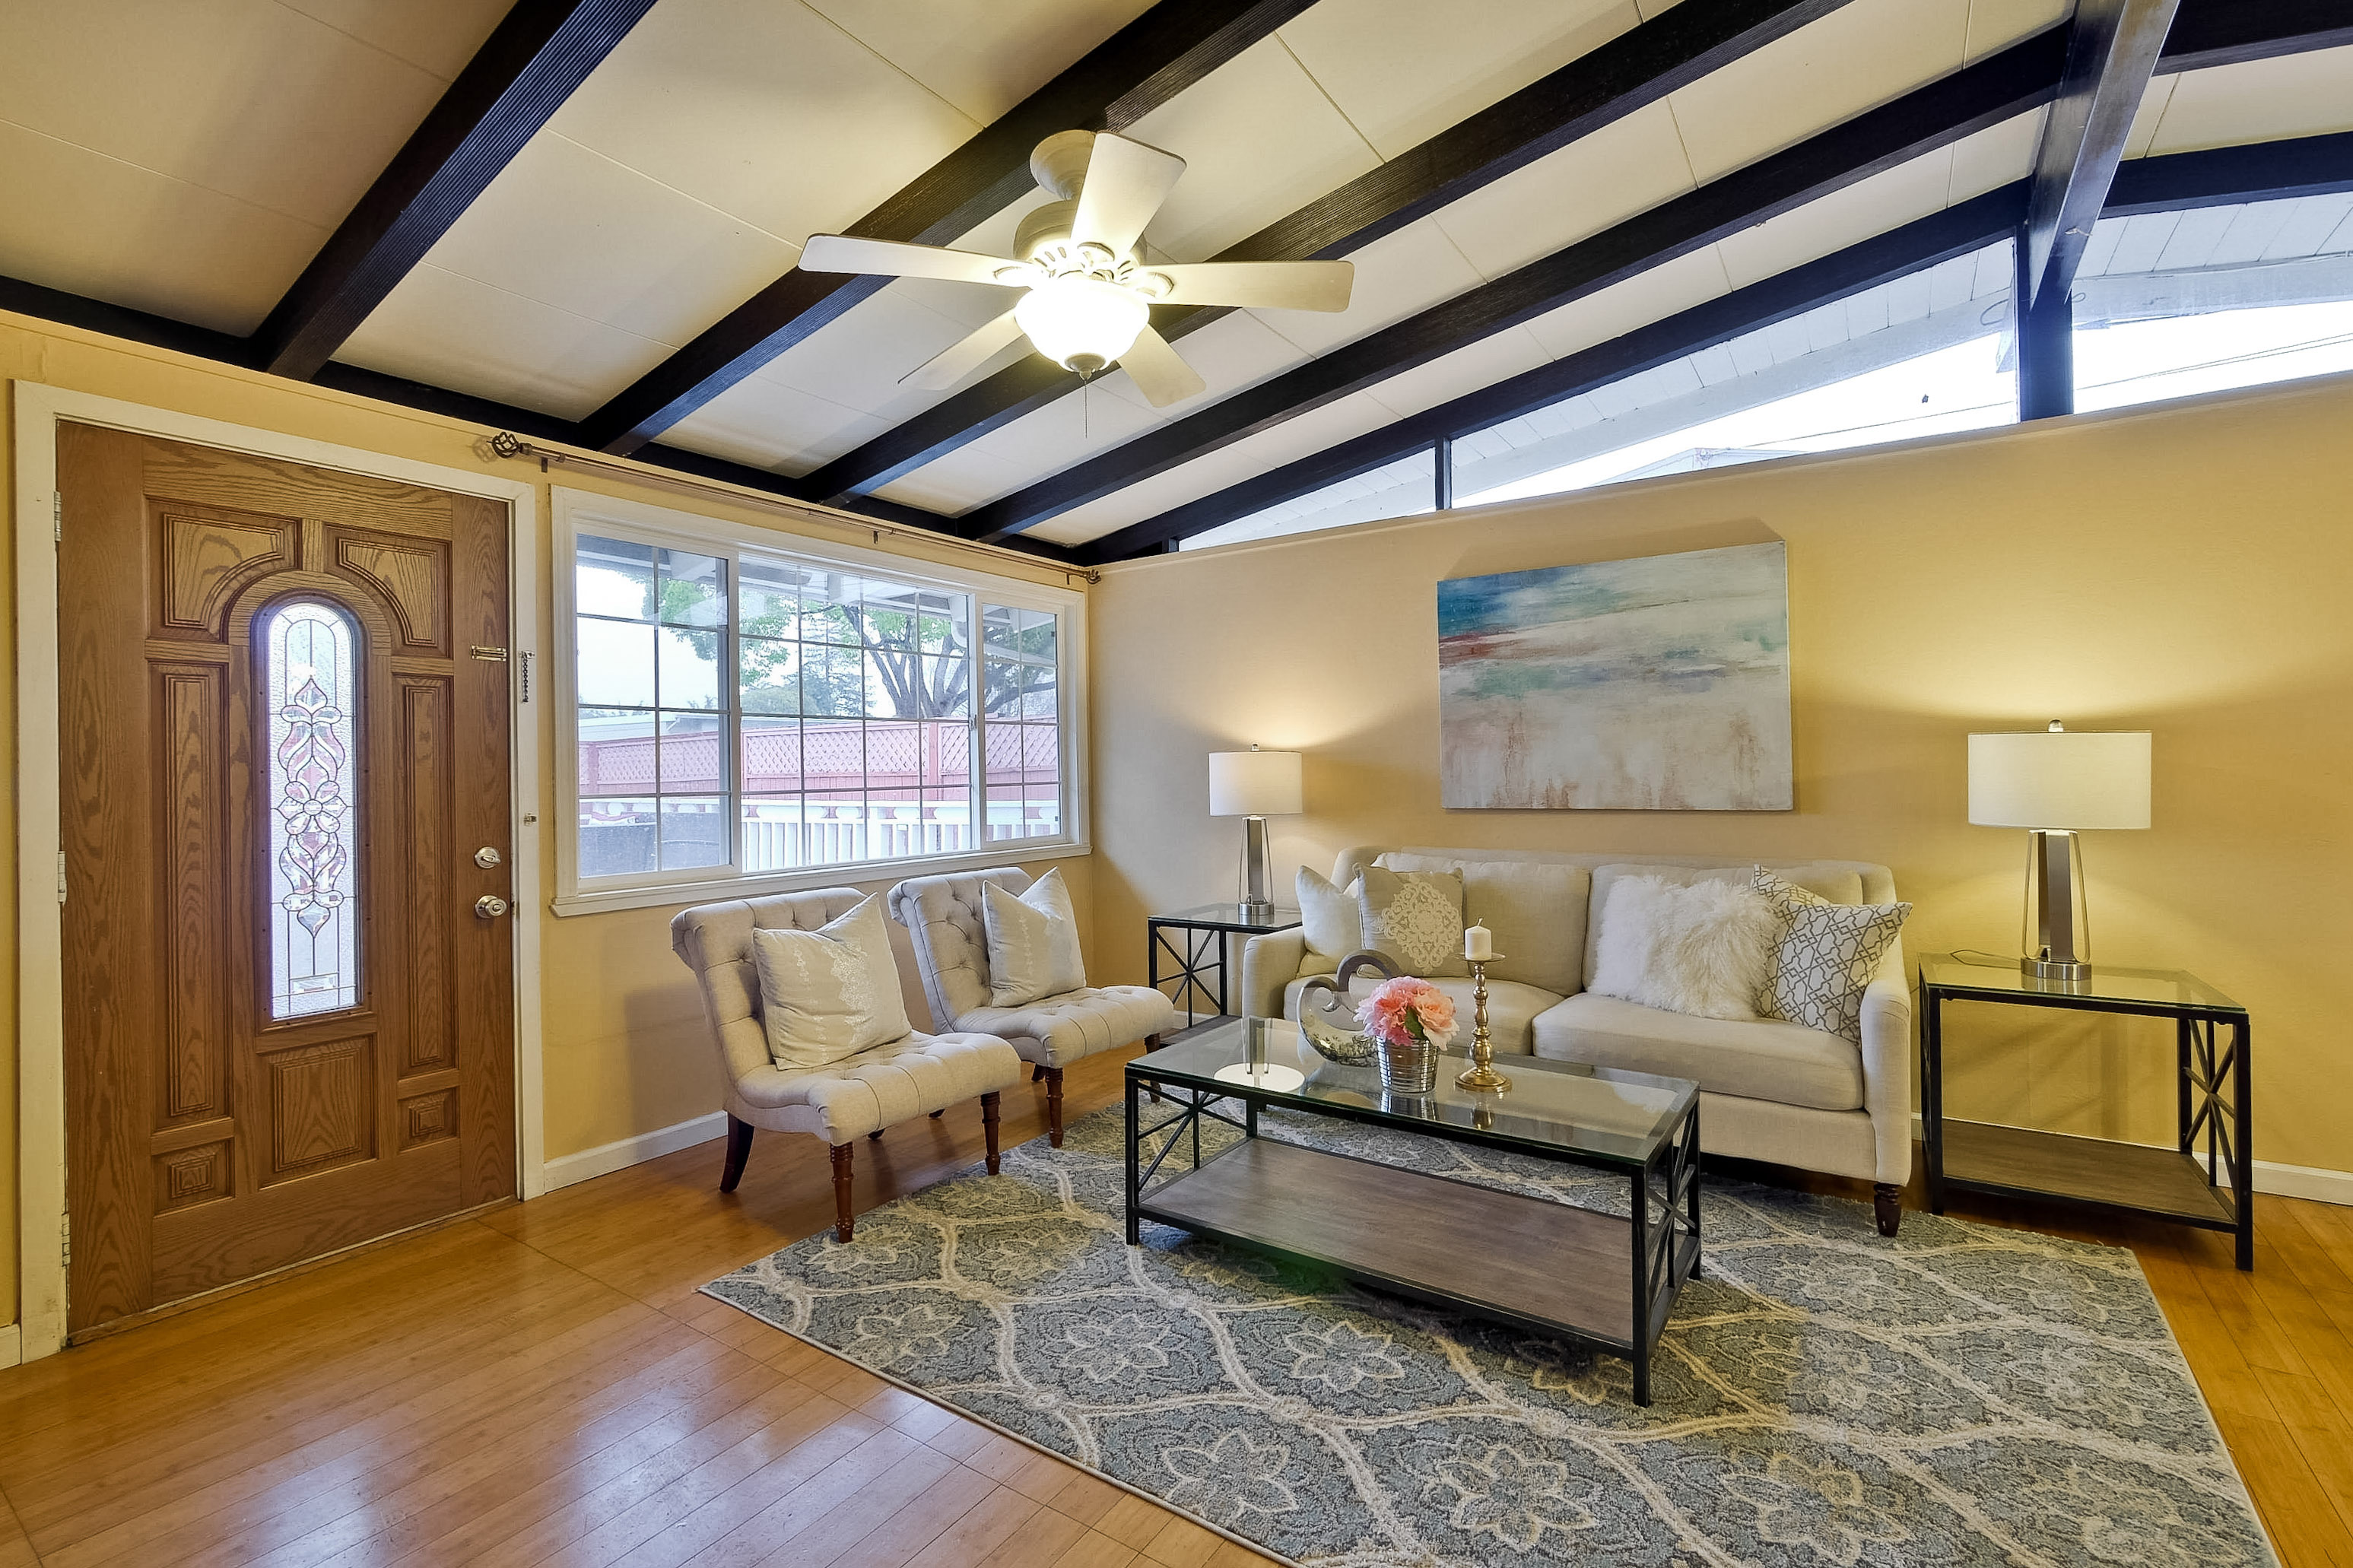 315 Meadowlake Dr, Sunnyvale 94089 - Living Room (C)